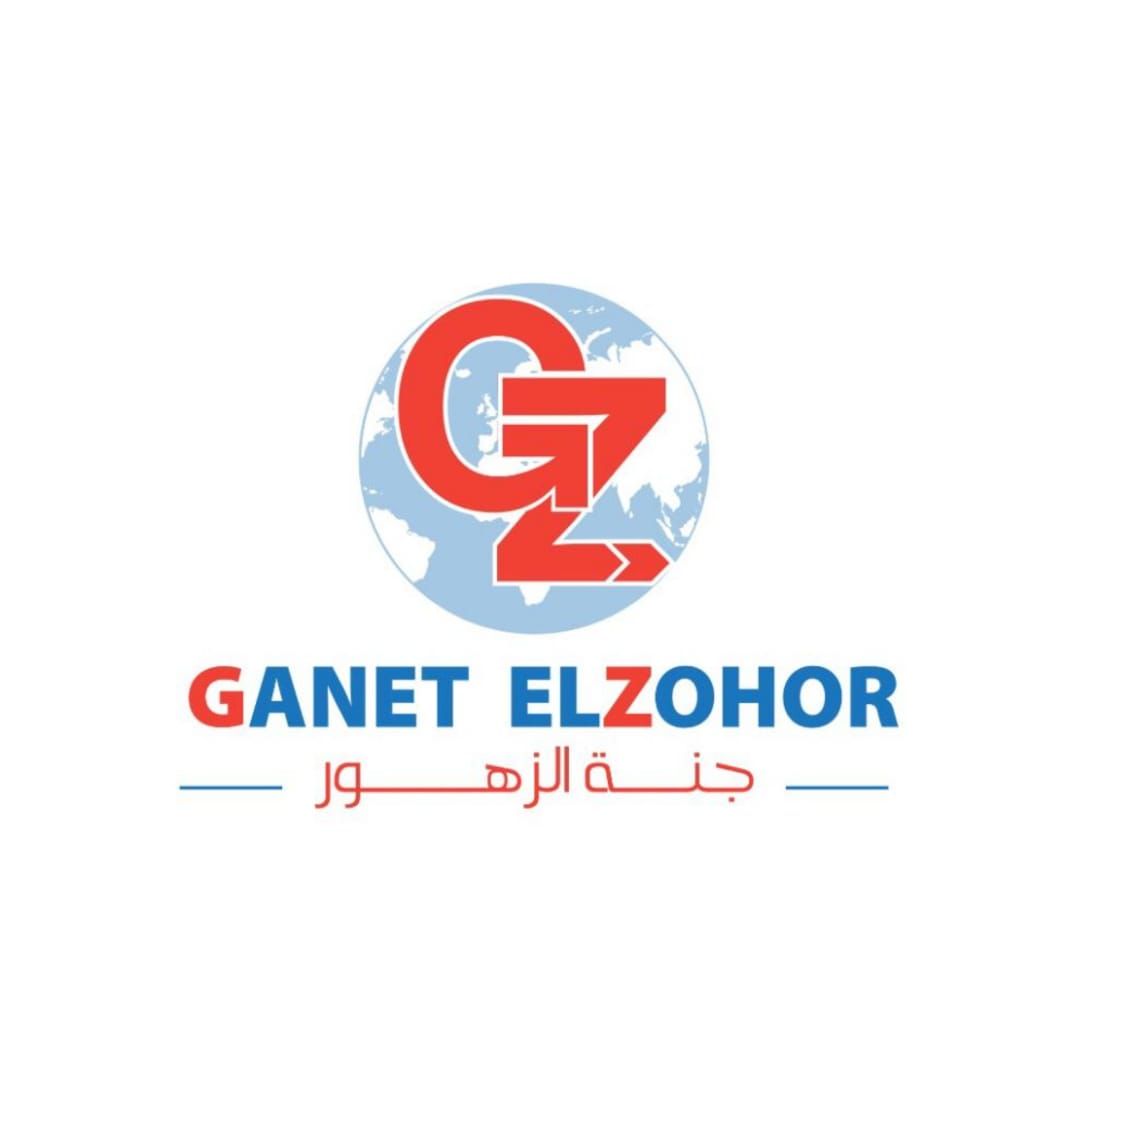 Ganet elzohor Company General contracting and trade‏‏